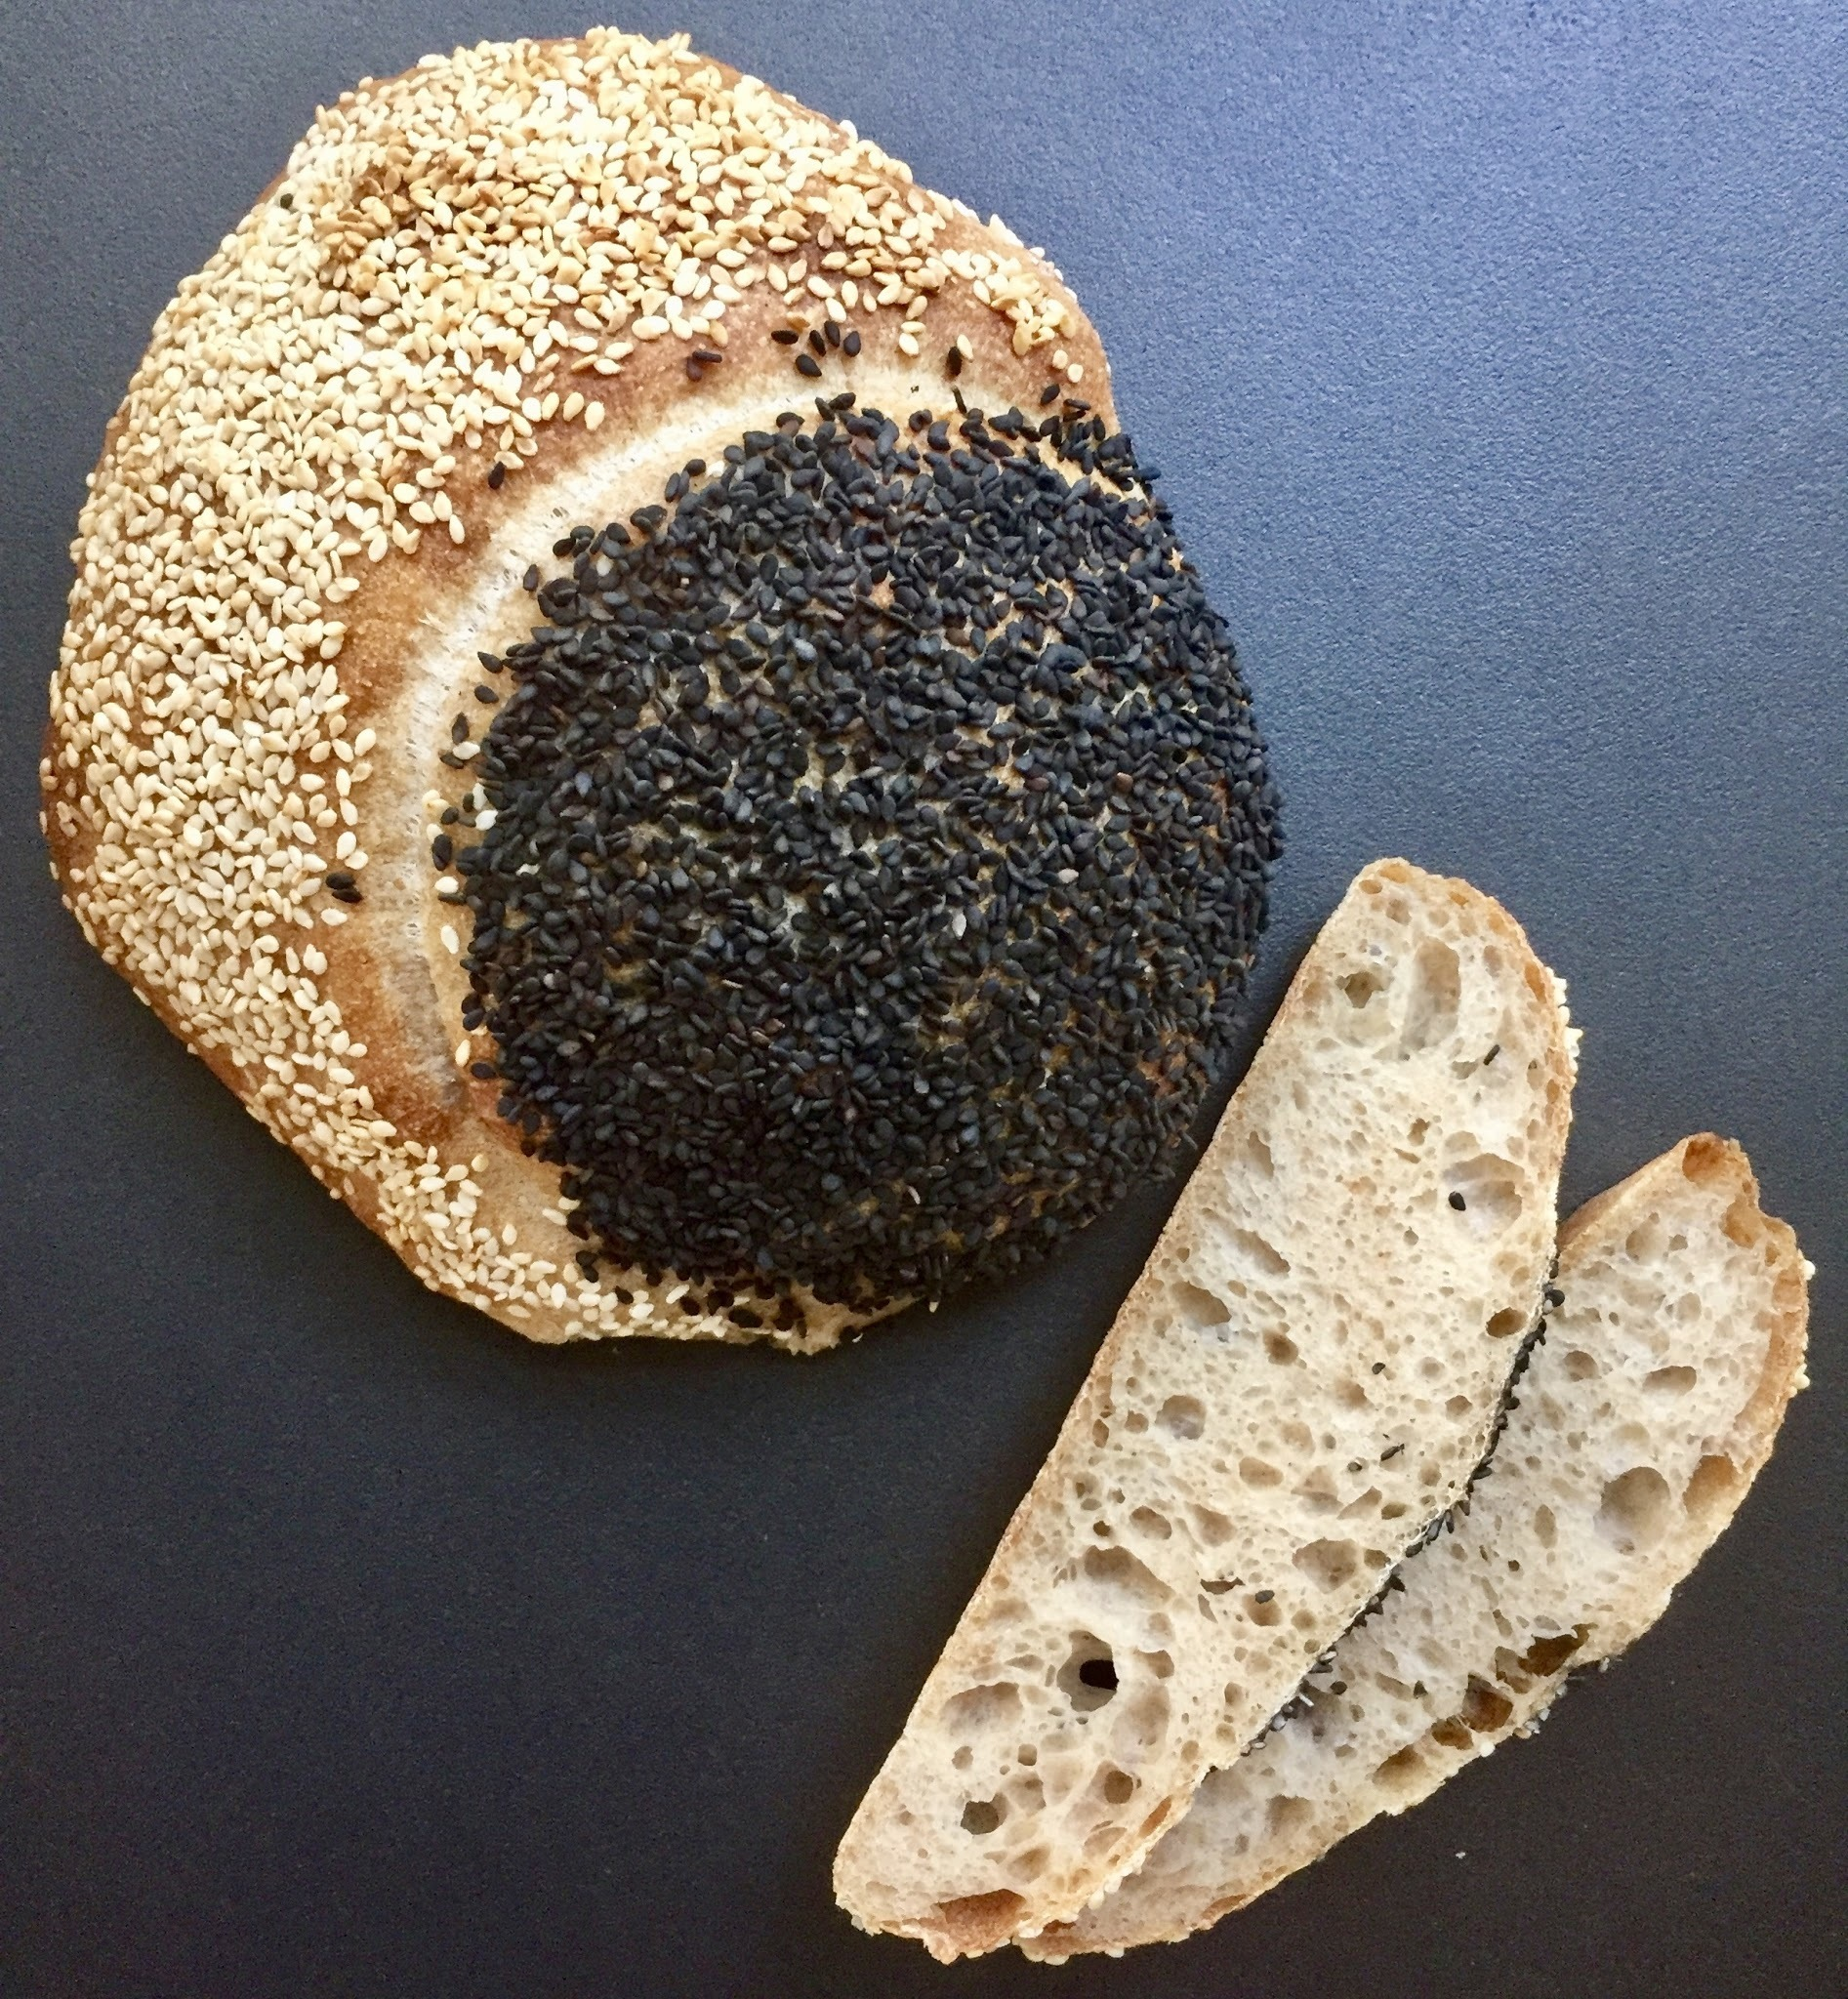 SOLAR ECLIPSE BREAD - A CRUSTY SESAME LOAF FOR A RARE EVENT